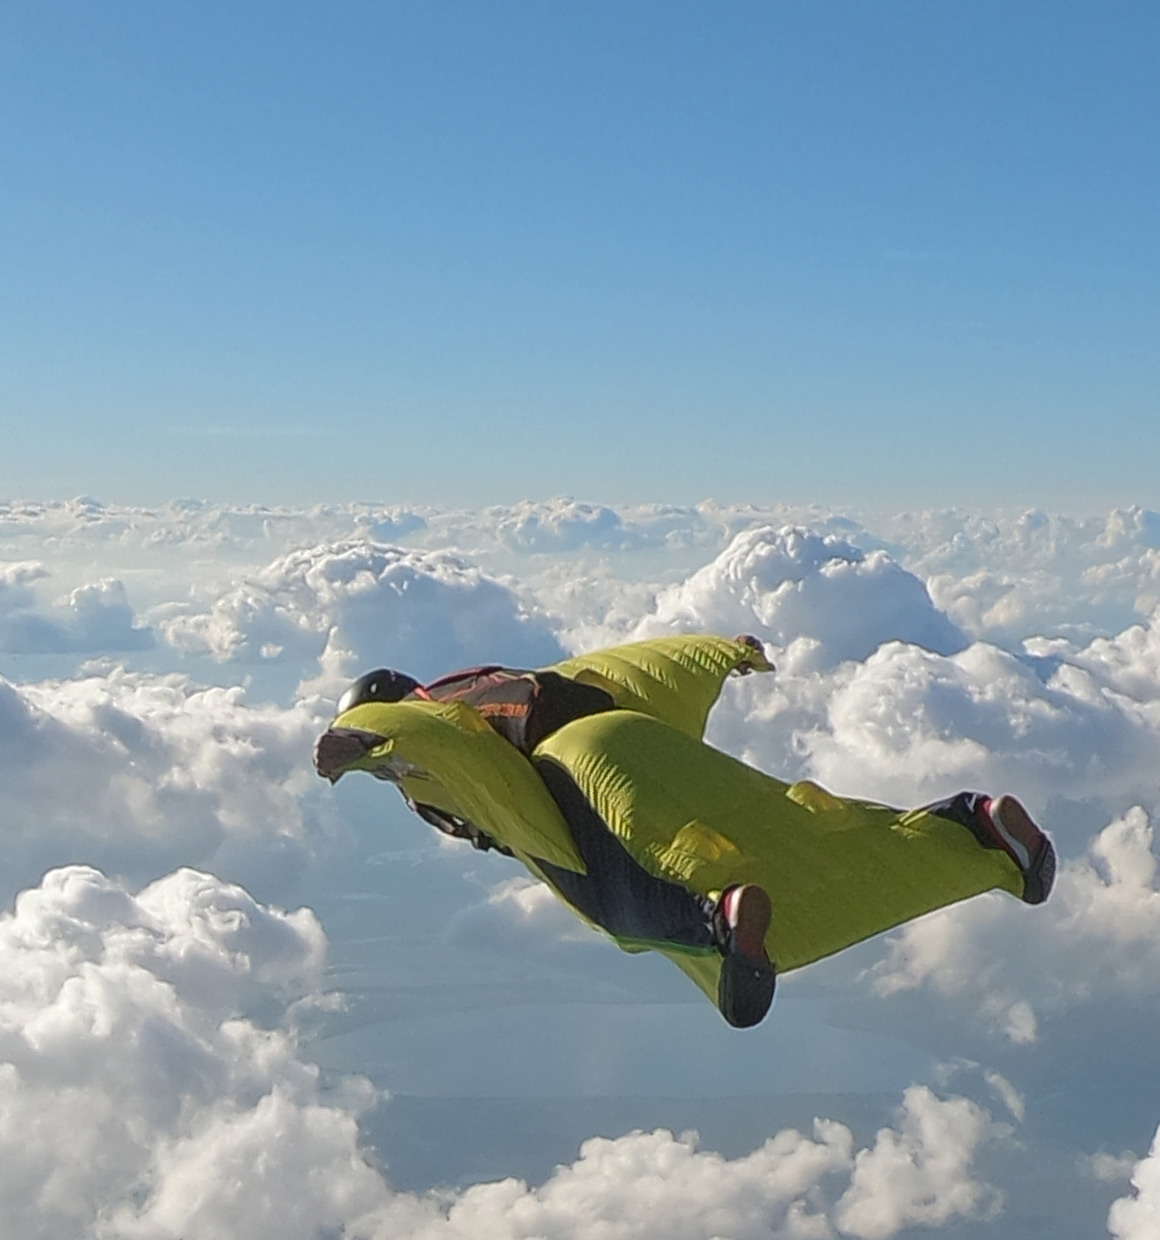 Intermediate wingsuit for skydiving and BASE jumping: Swift